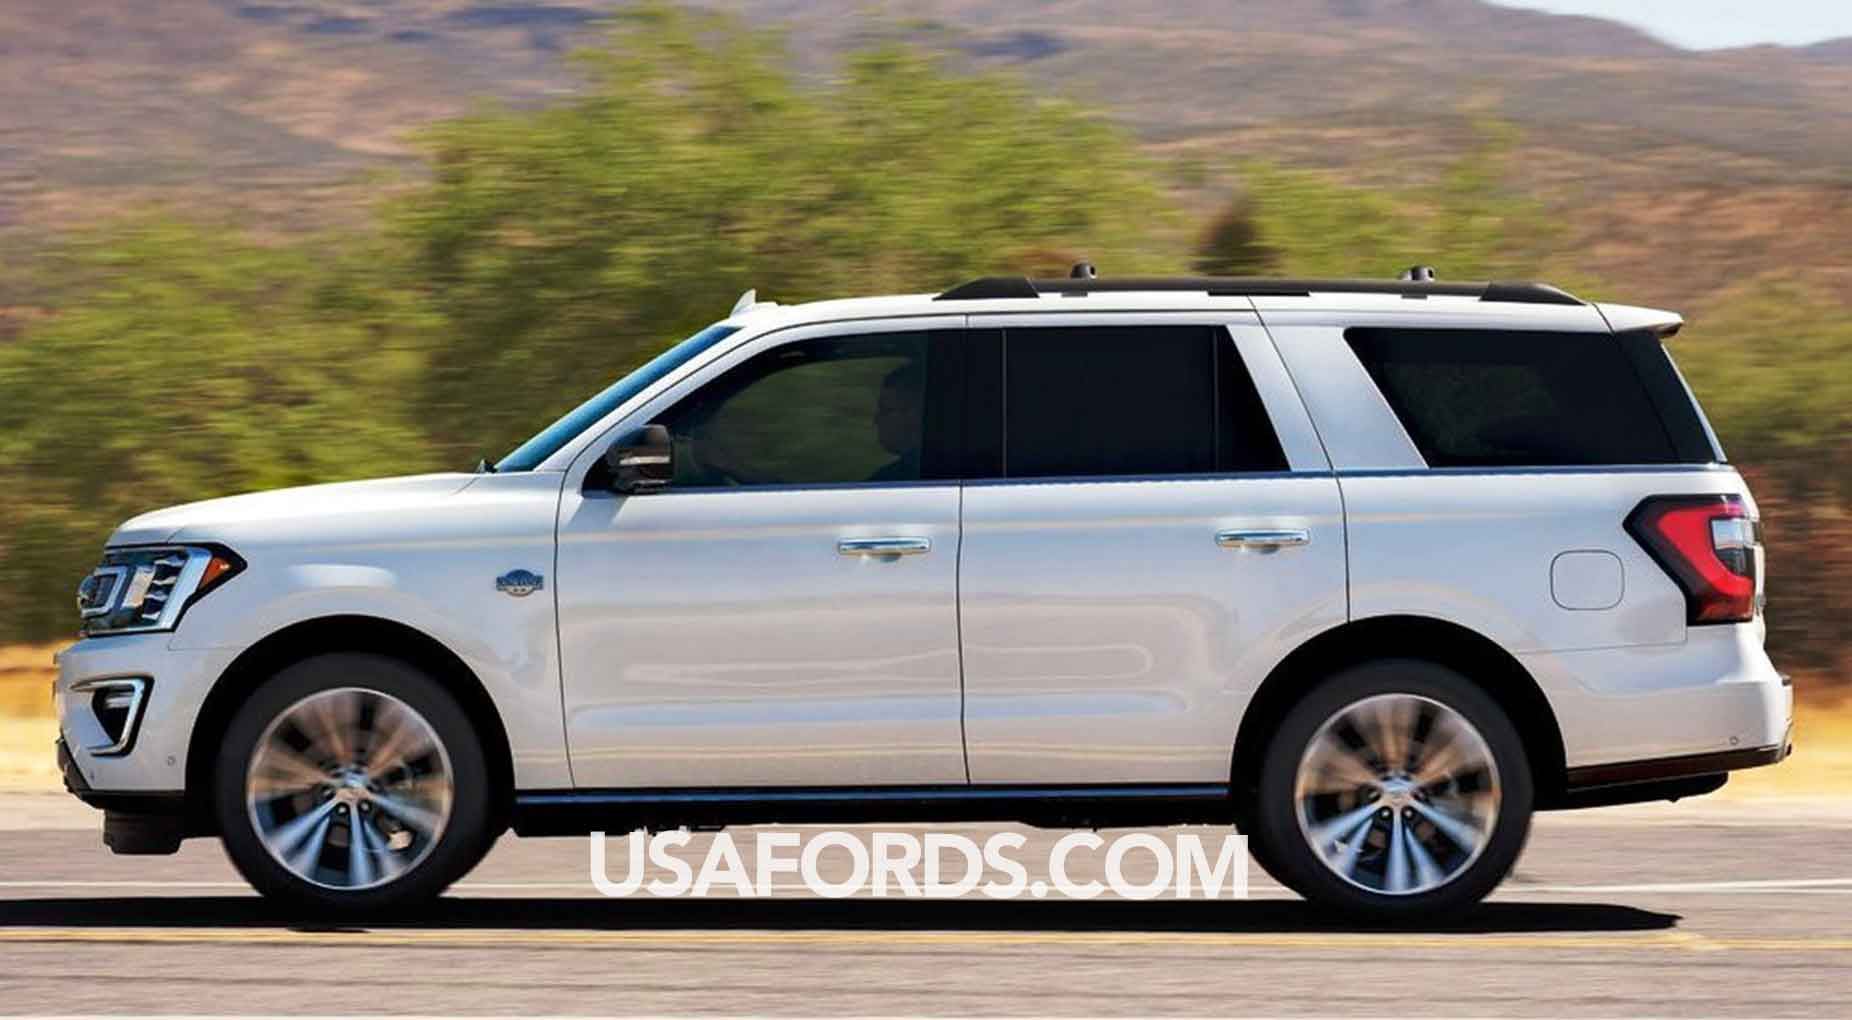 2021 Ford Expedition Redesign | Usa Fords Car